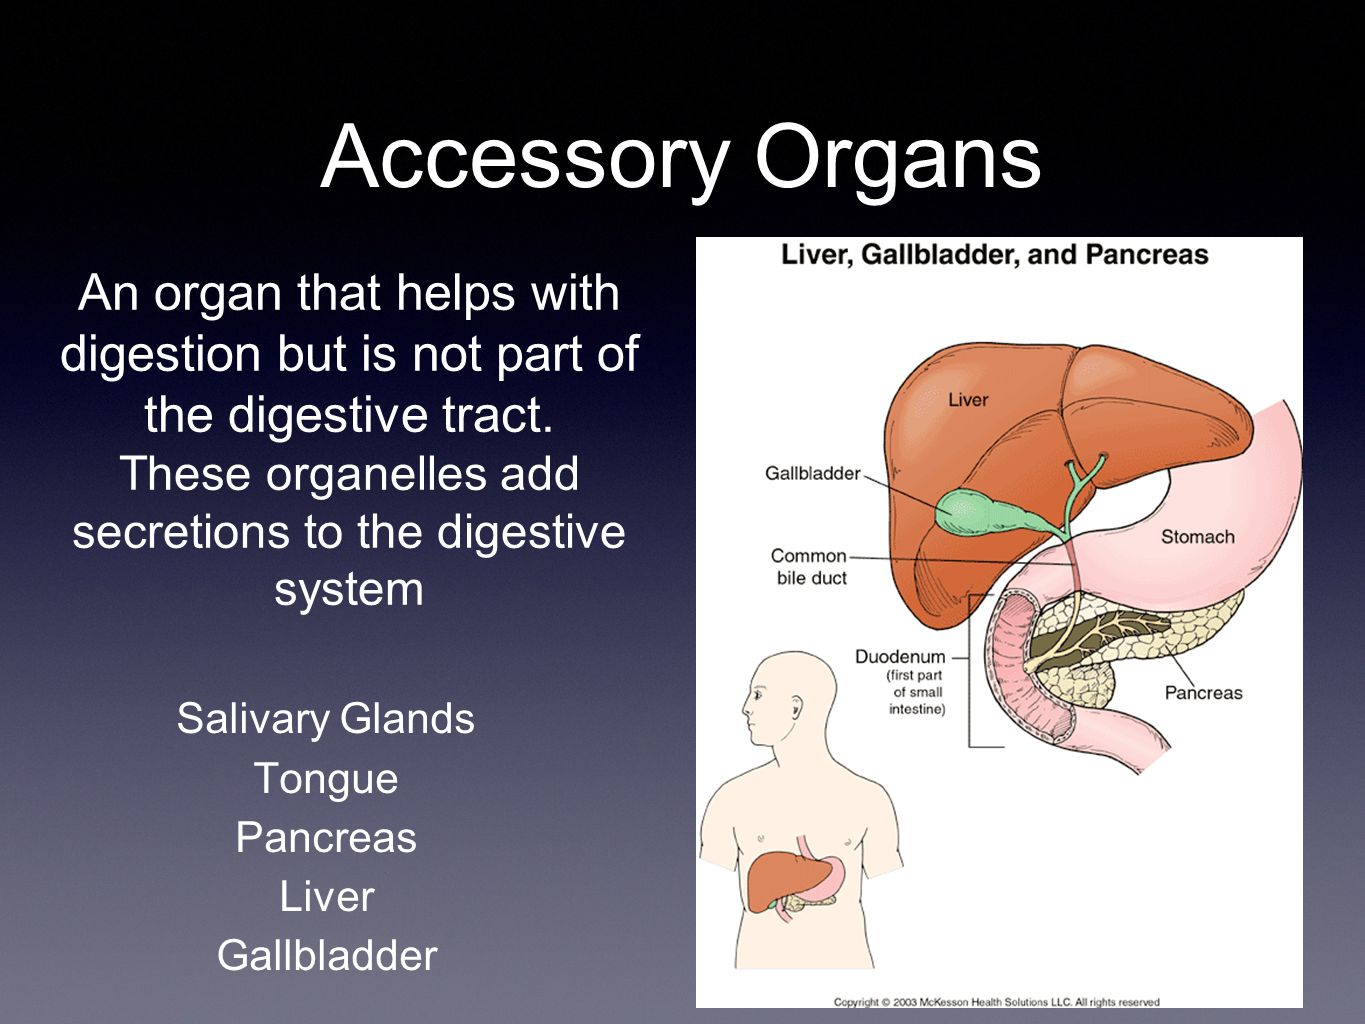 Accessory Organs An organ that helps with digestion but is not part of